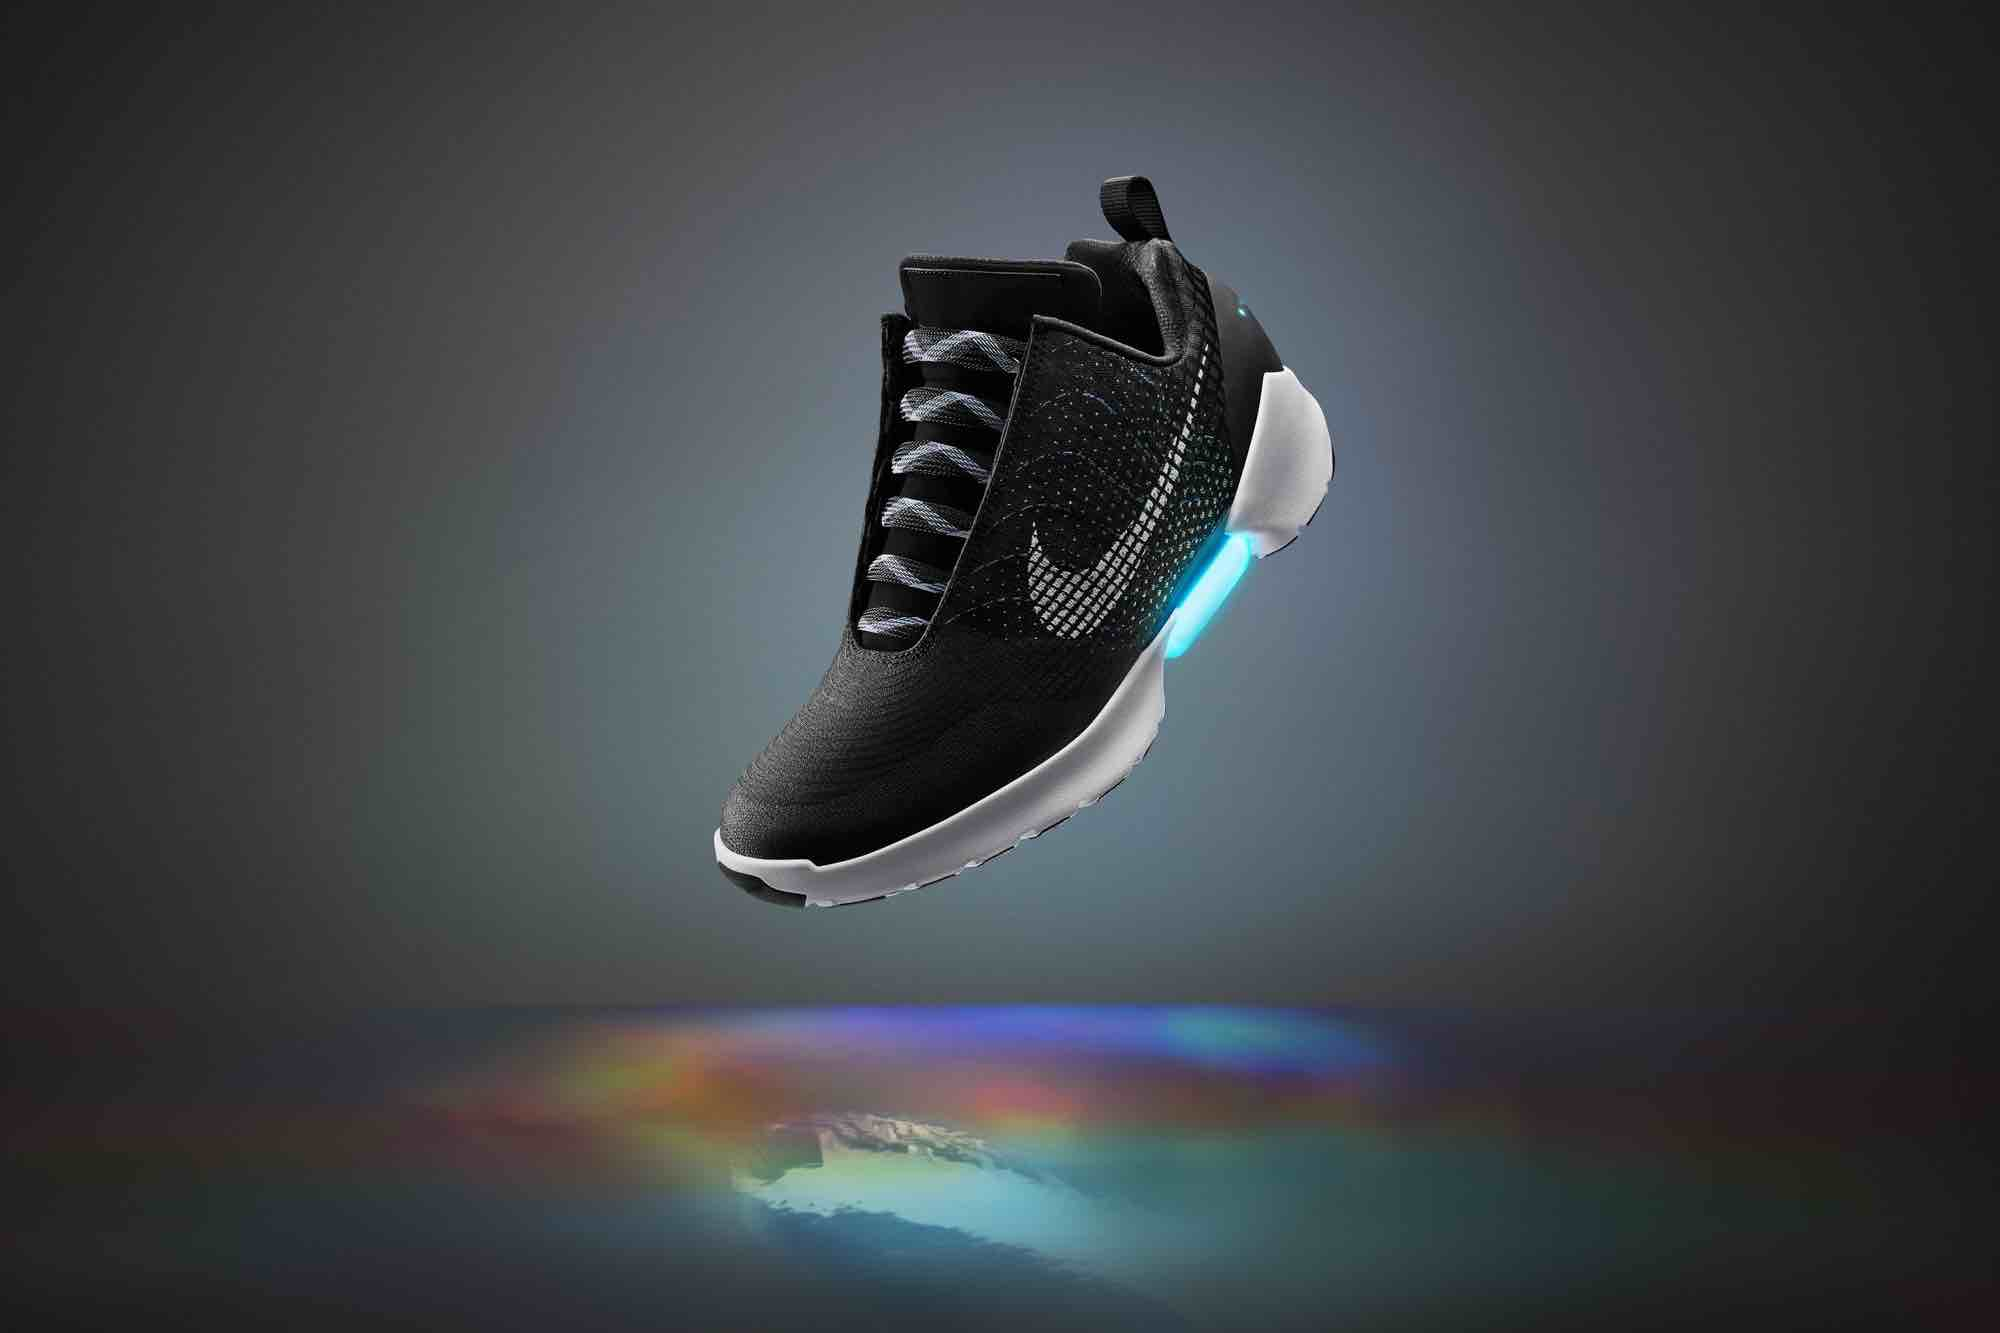 nike hyperadapt les chaussures inspir es de retour vers le futur arrivent le 28 novembre. Black Bedroom Furniture Sets. Home Design Ideas